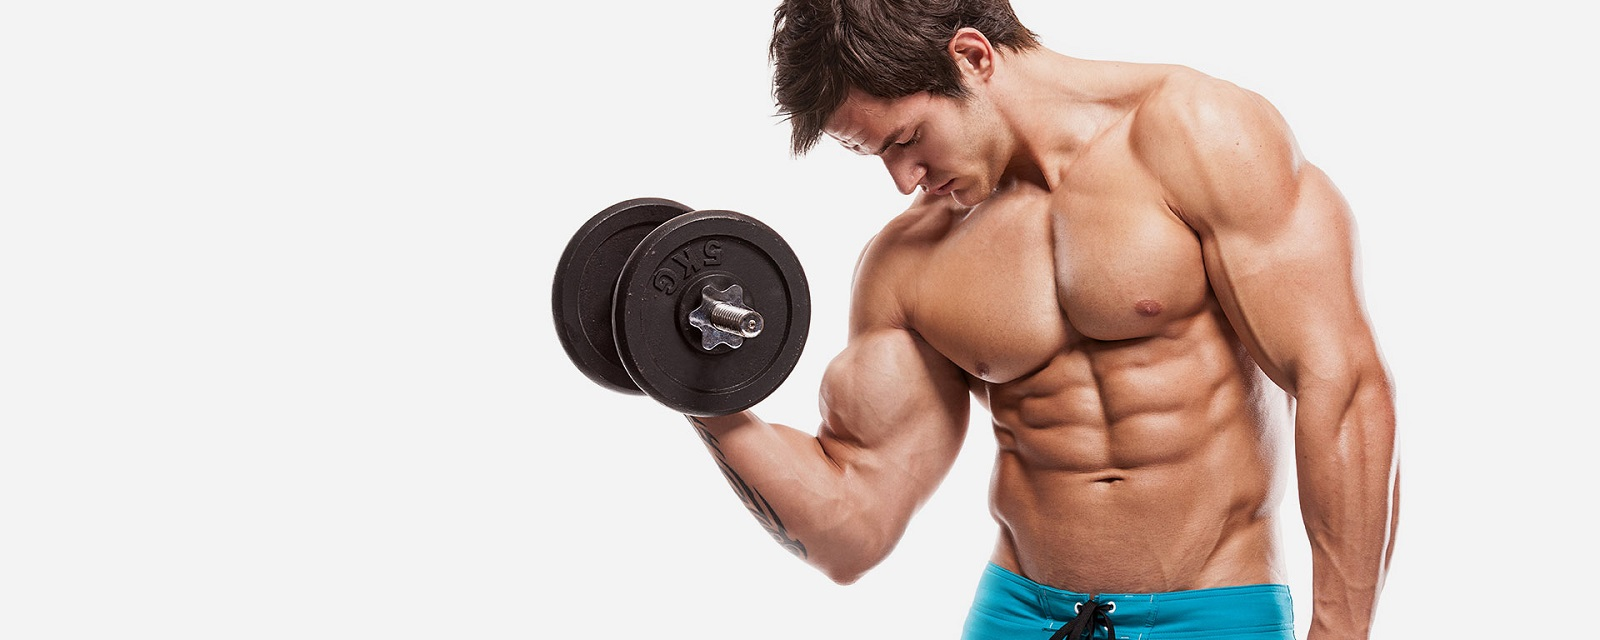 High Quality Bodybuilding Supplements